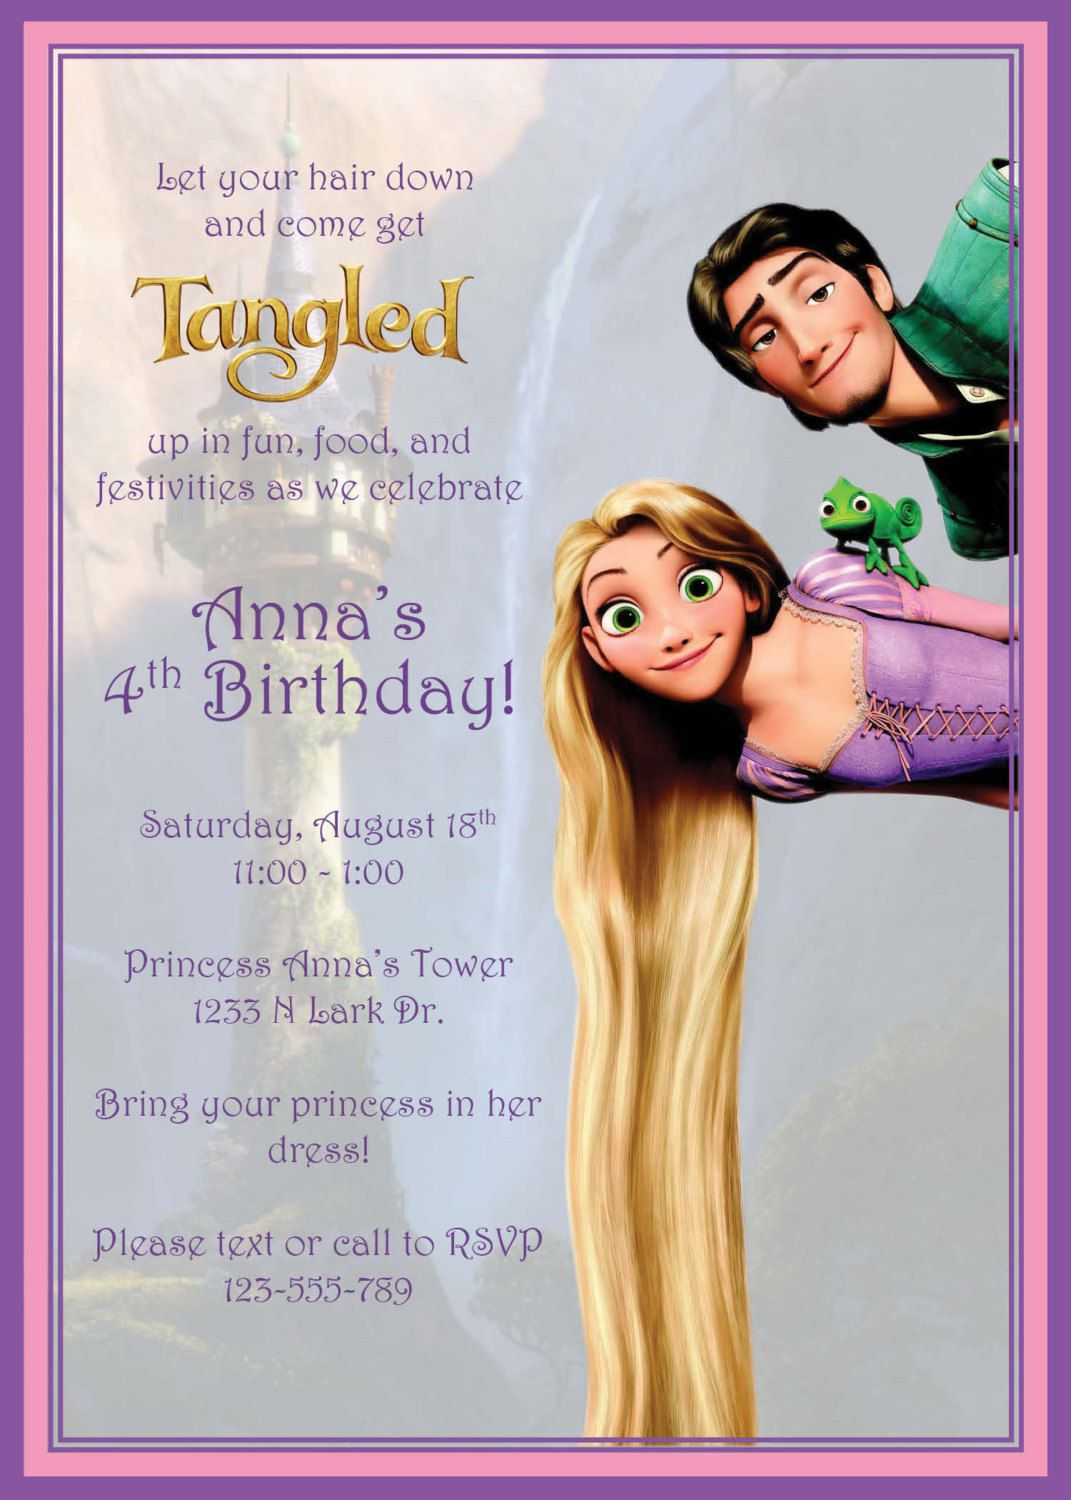 Personalized tangled rapunzel birthday invitation 600 via etsy personalized tangled rapunzel birthday invitation 600 via etsy filmwisefo